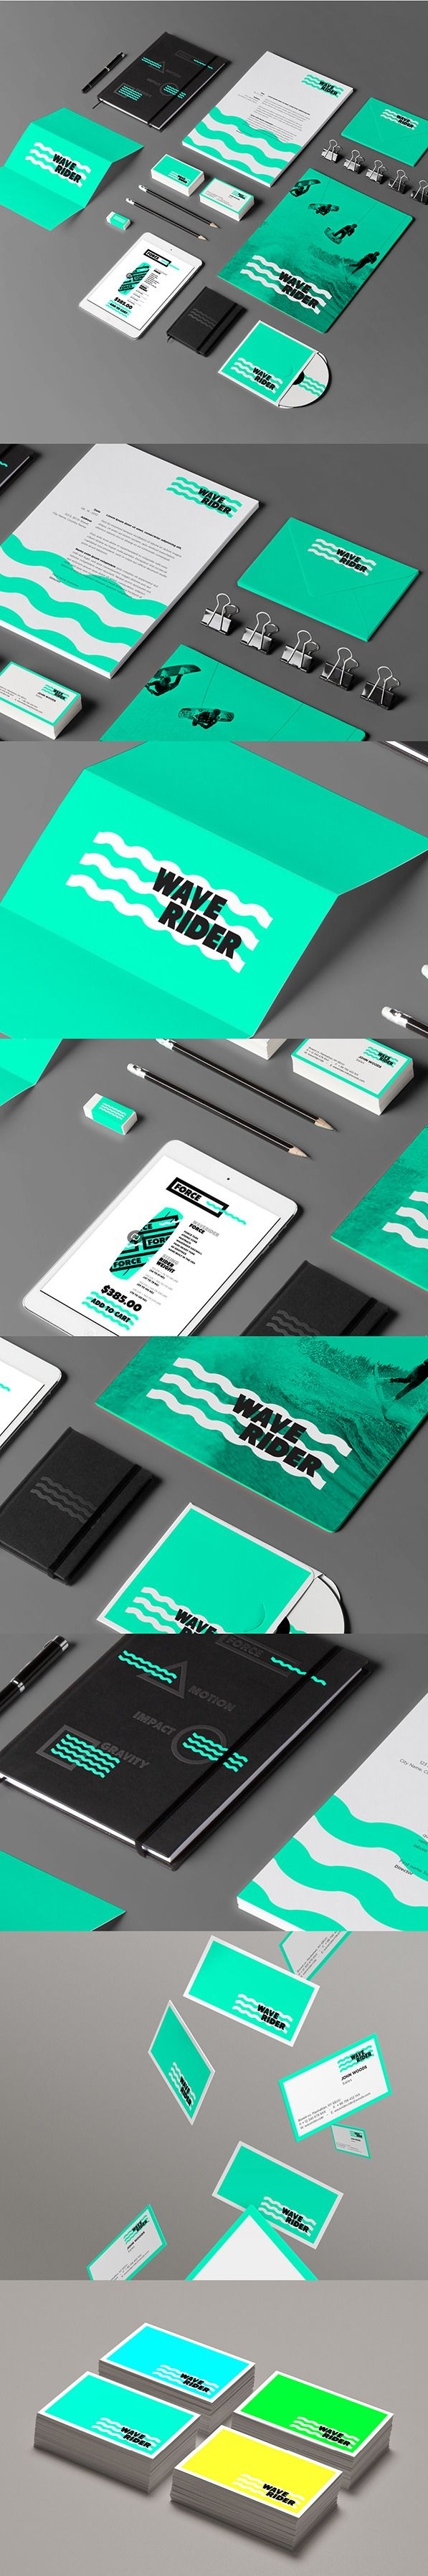 WAVERIDER // Branding by Jonathan Quintin - amazing colours